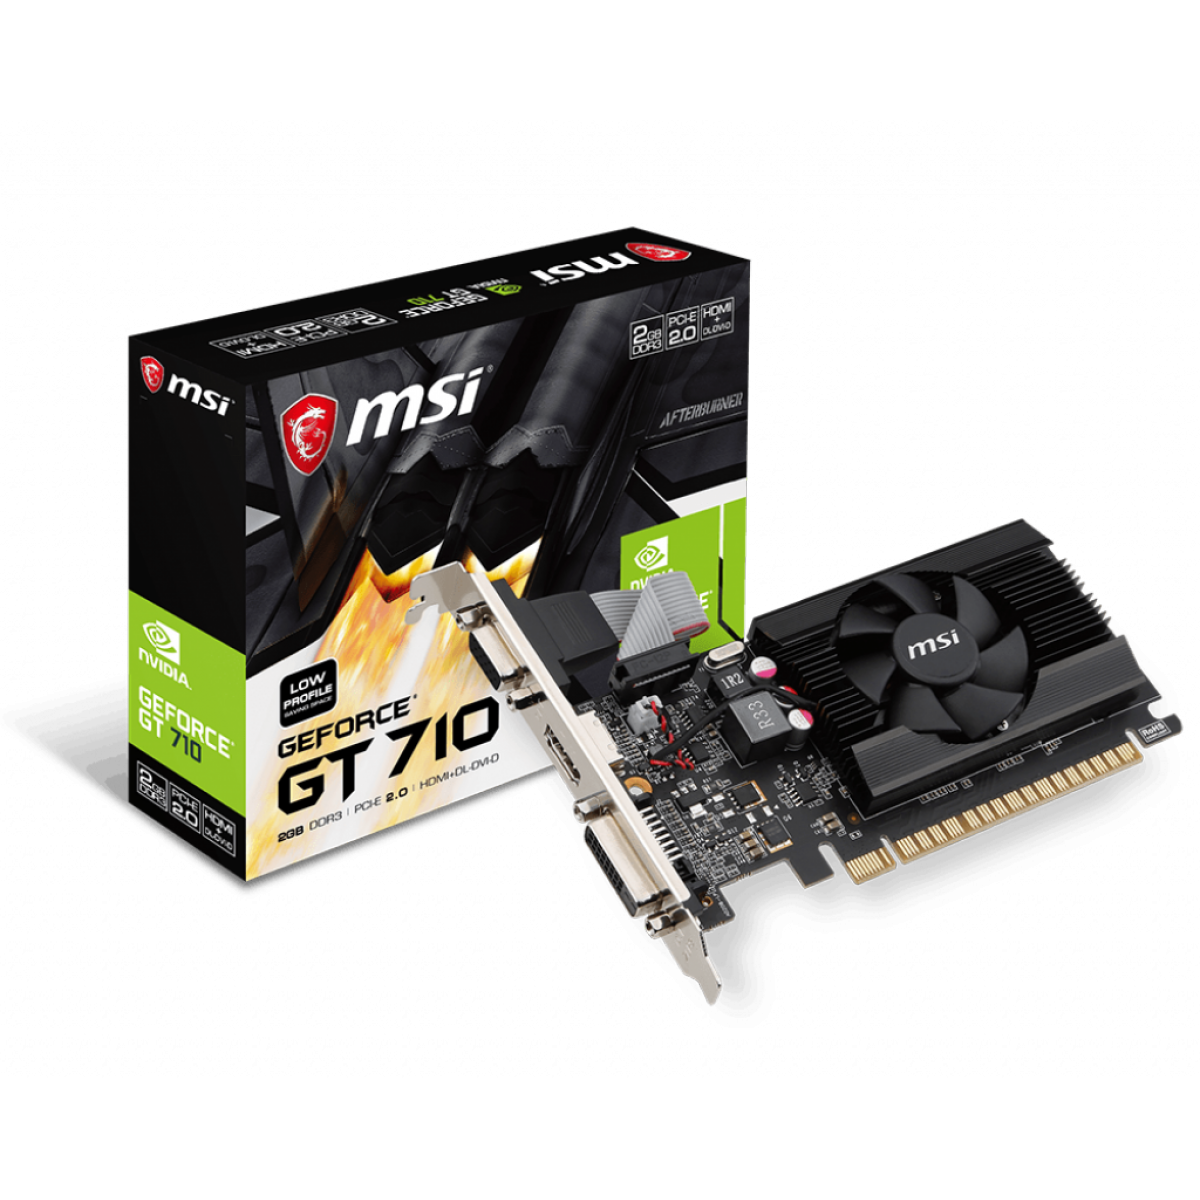 Placa de Vídeo MSI, Geforce, GT 710 2GD3 LP, 2GB, GDDR3, 64 bit, 912-V809-2024